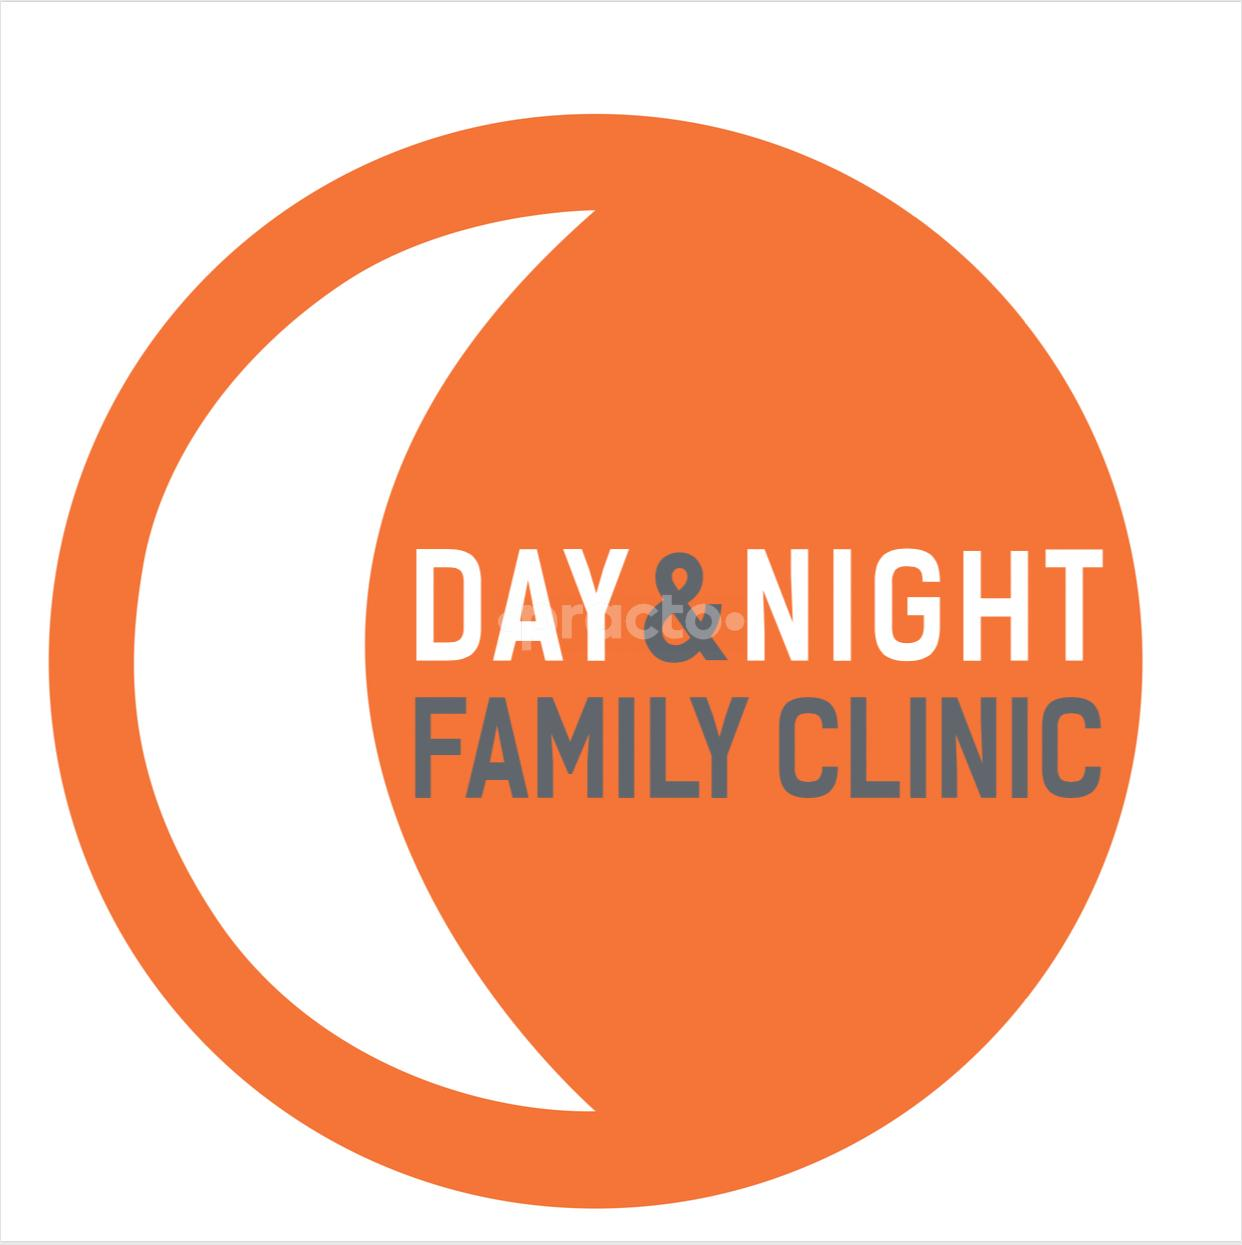 Day & Night Family Clinic